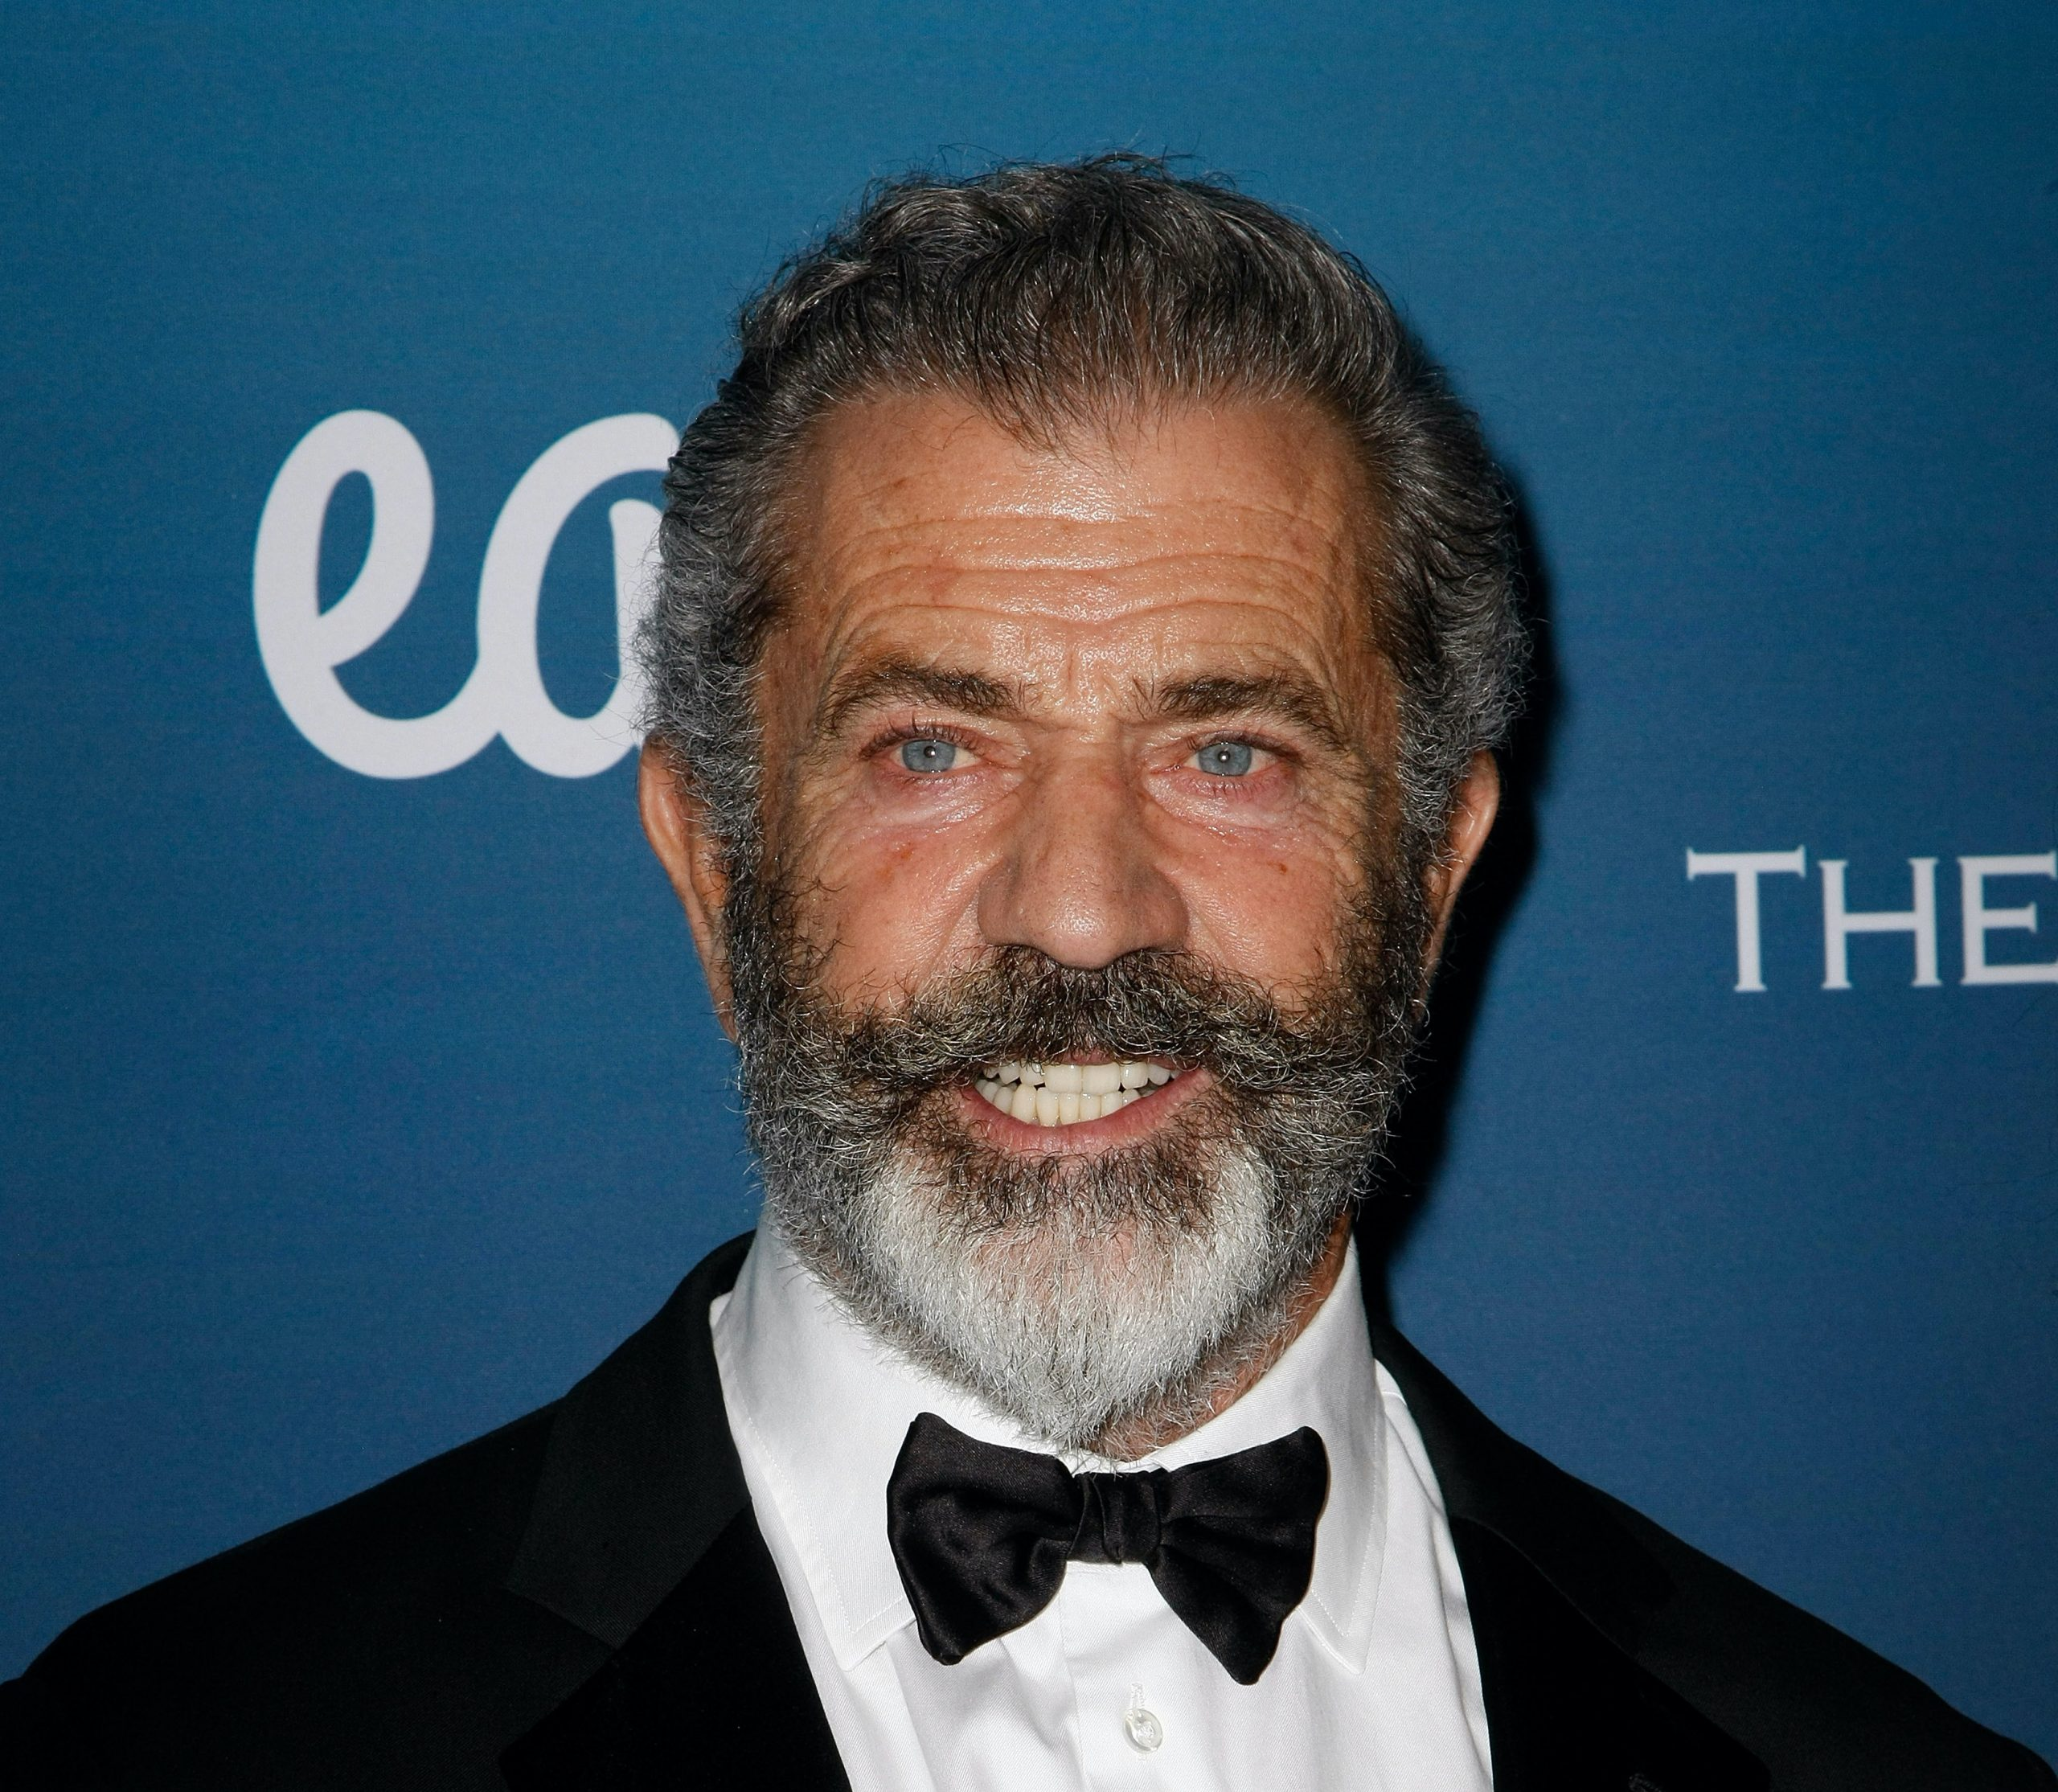 Mel Gibson's Puerto Rico Hurricane Movie Stirs Up Racial Stereotypes Online